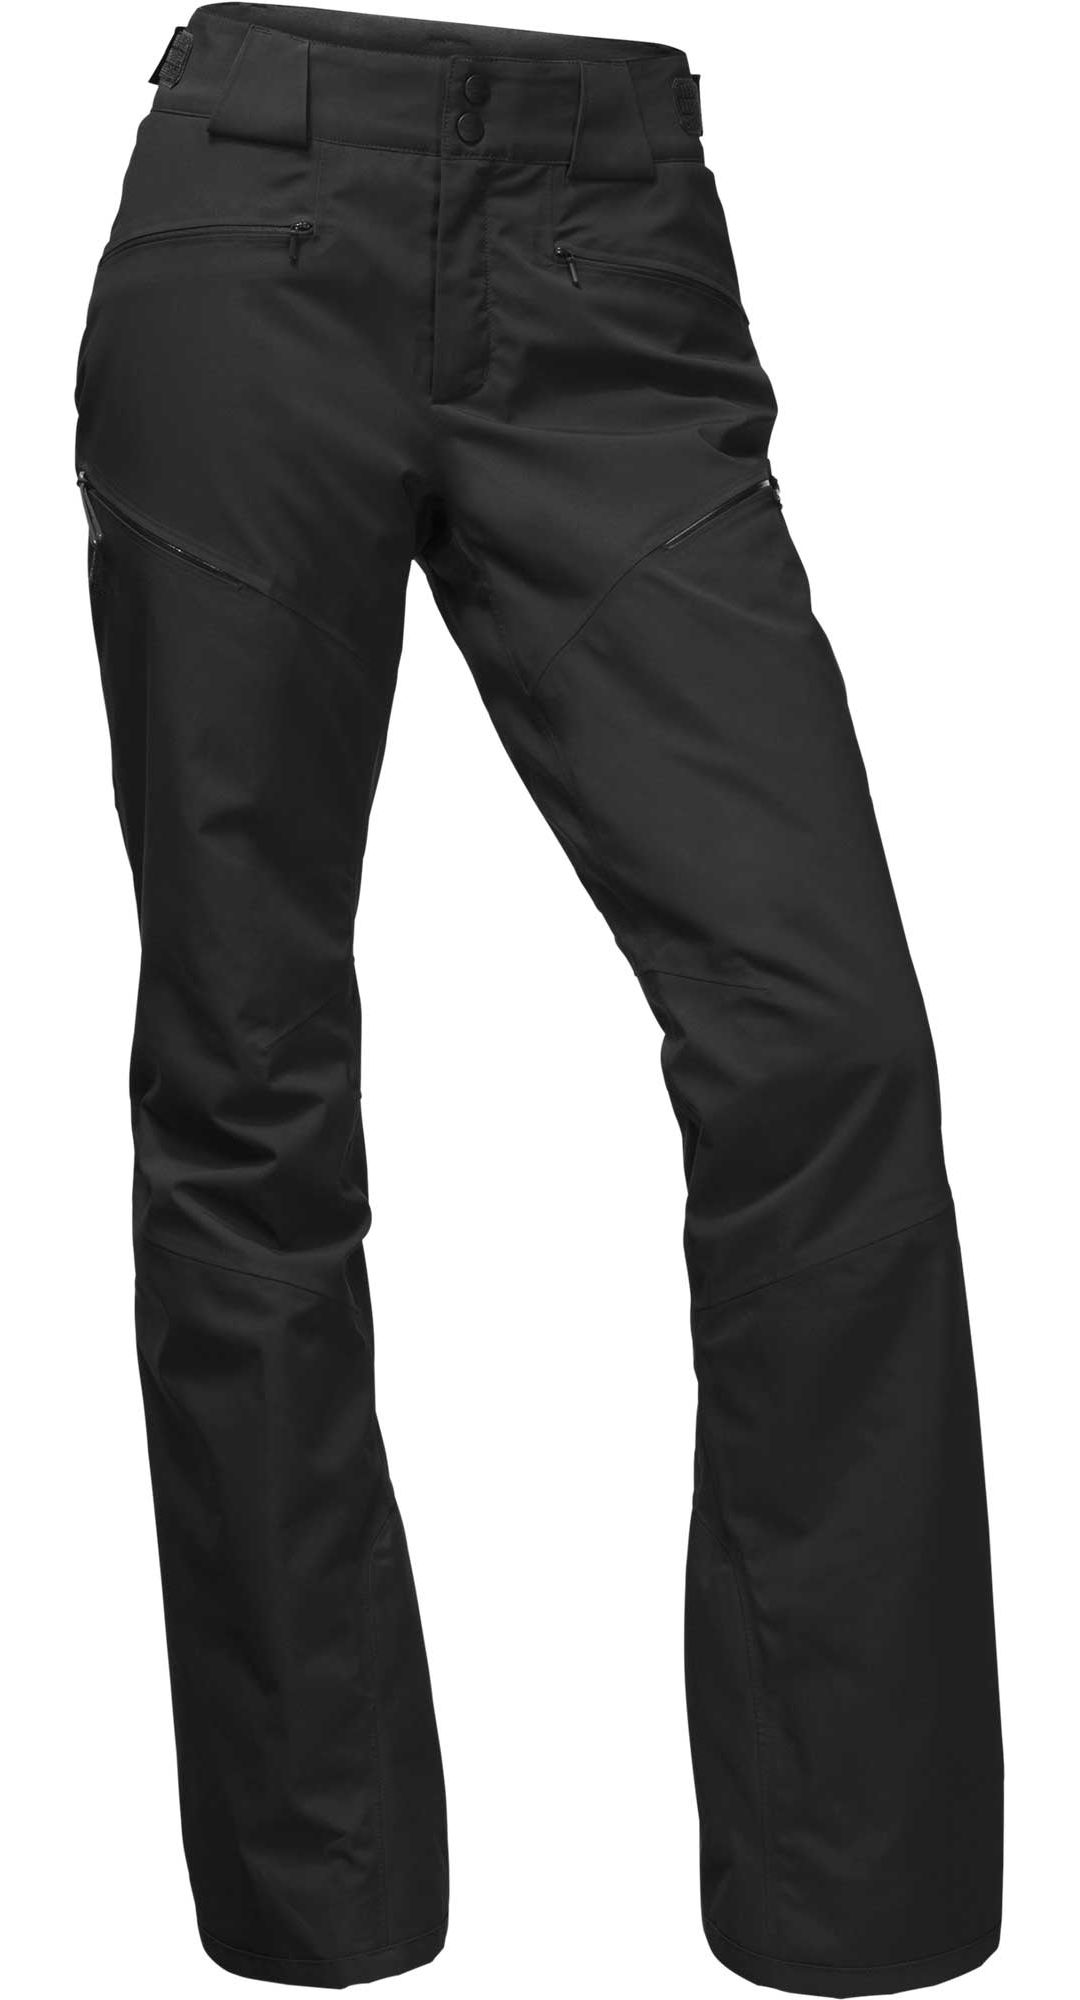 a6a36629c85 The North Face Women's Anonym Pants